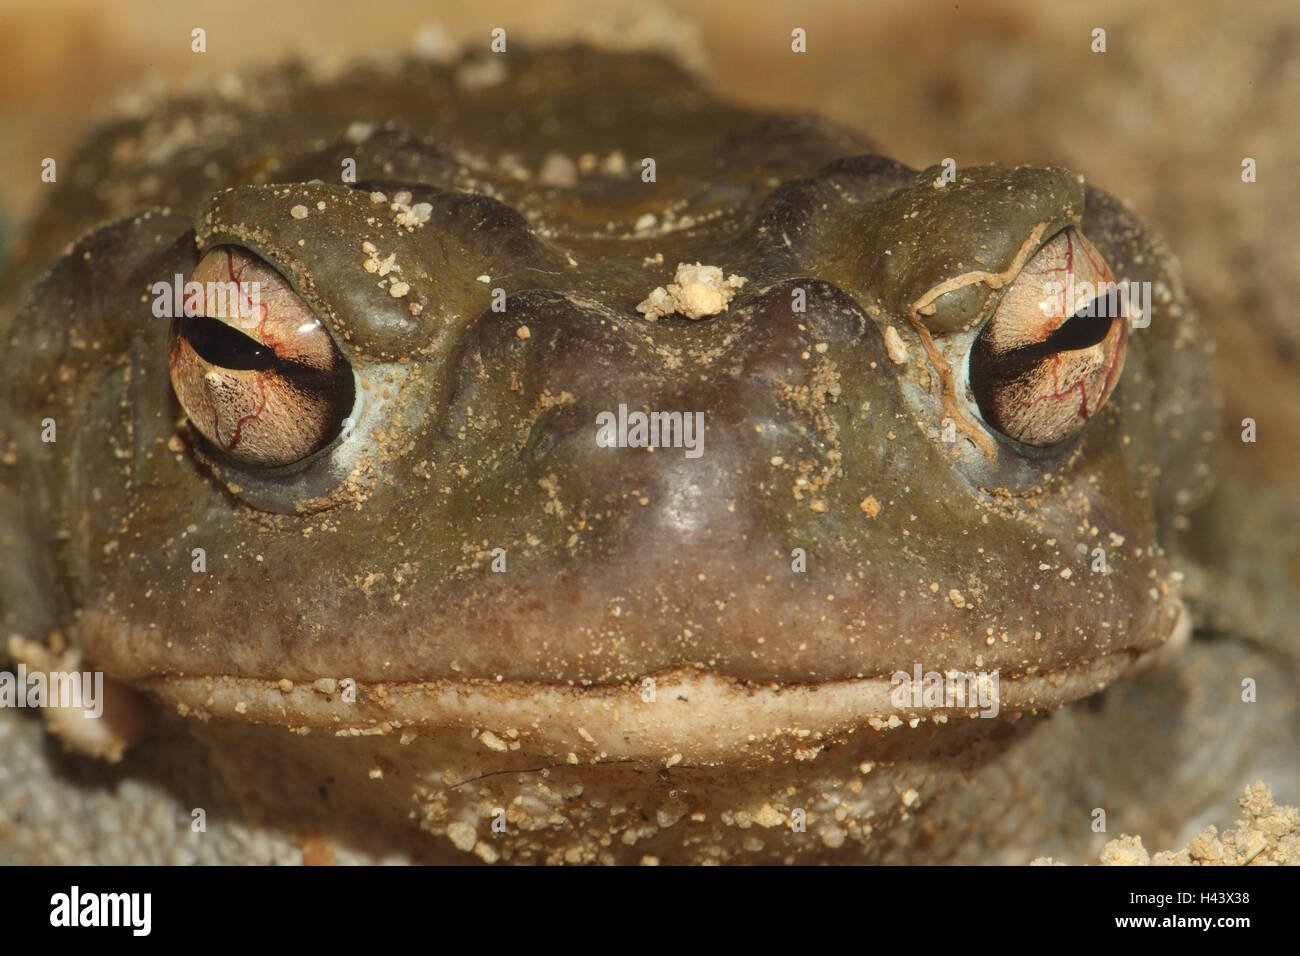 Colorado toad, close up, Colorado River toad, Sonora toad, toad, Bufonidae, amphibian, frog, frog Amphibians, detail, - Stock Image